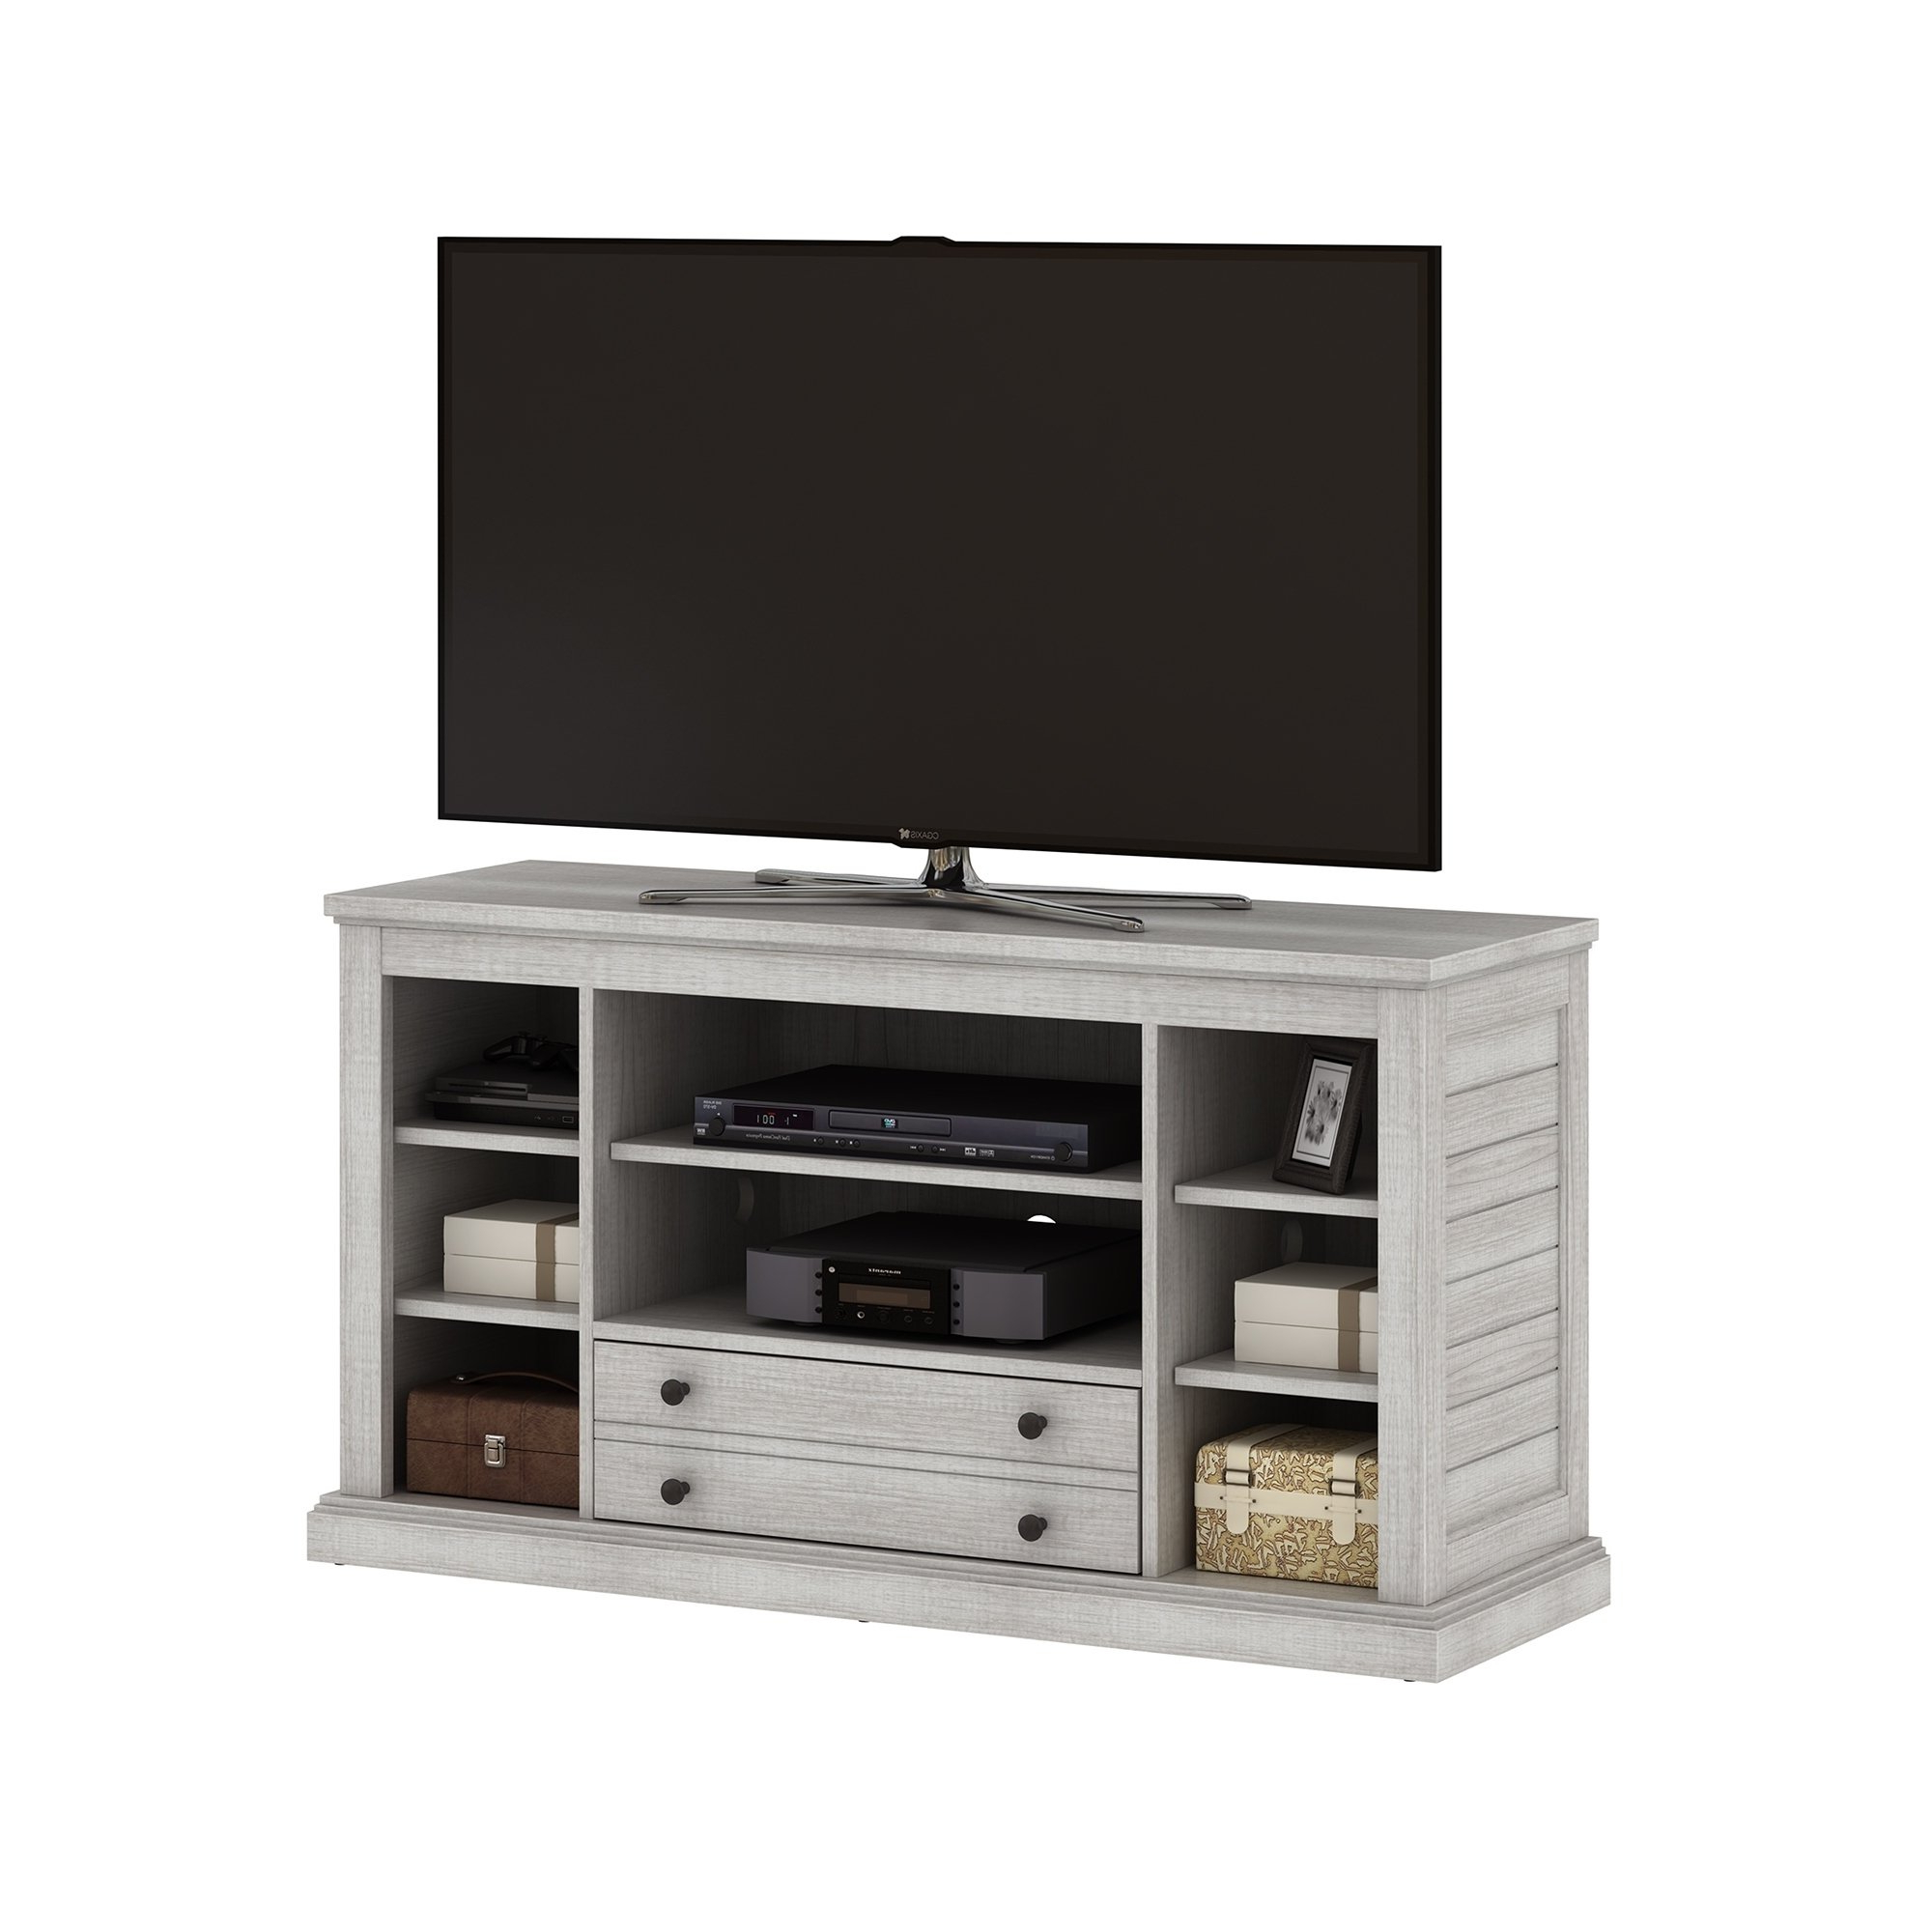 "Shop Abbott Commons Tv Stand For Tvs Up To 55"", Sargent Oak – Free Intended For Abbot 60 Inch Tv Stands (Gallery 16 of 20)"